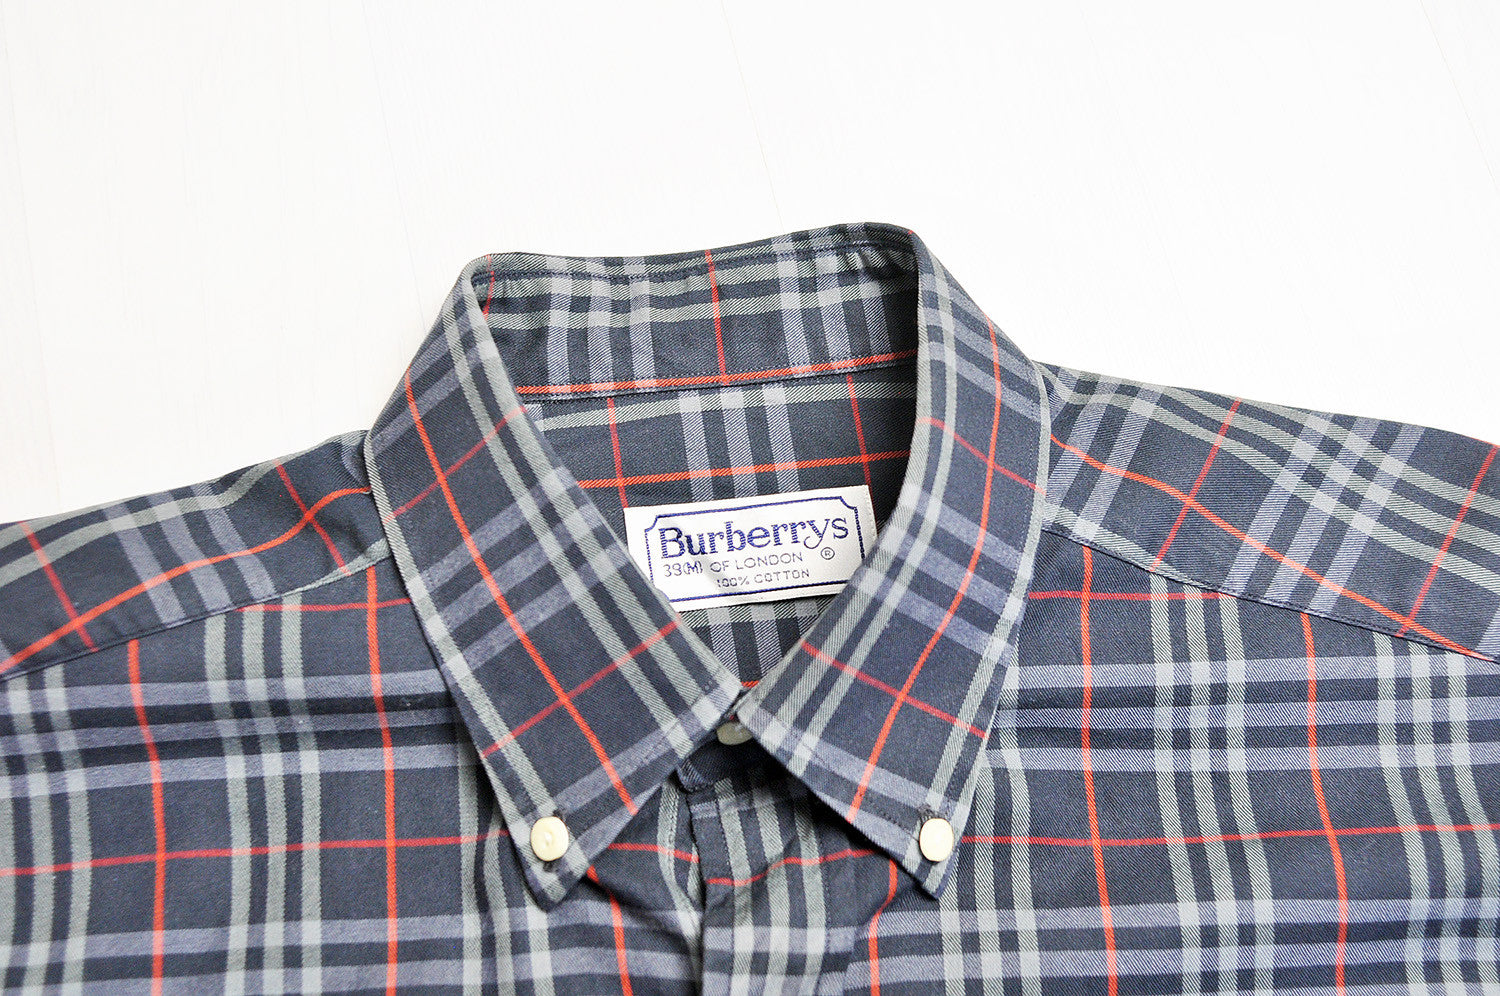 Vintage Burberry Classic Navy Nova Check Long Sleeve Oxford Shirt